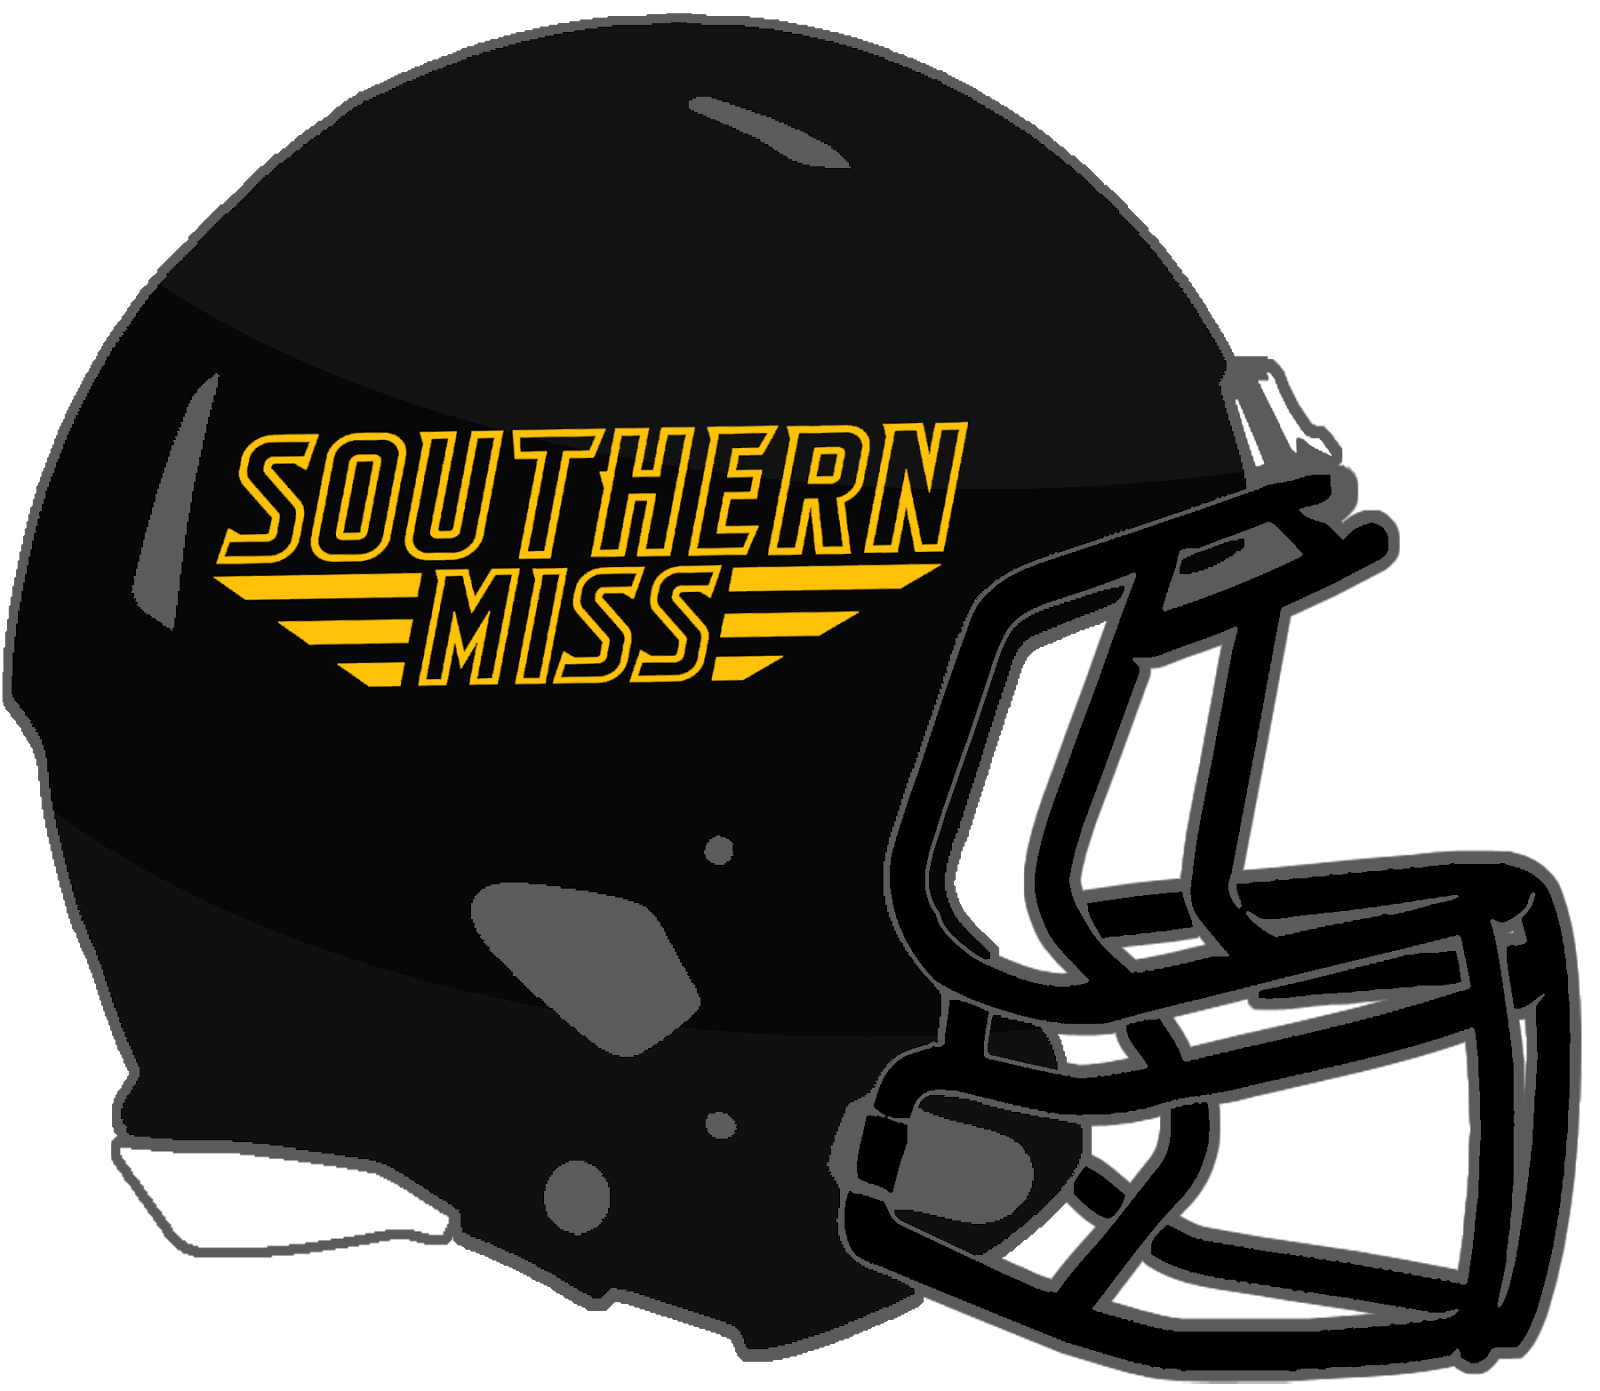 6f2f93f80ed In total, 8 helmet designs were worn by the Golden Eagles in 2017, all  featuring a shiny black shell and black facemask: